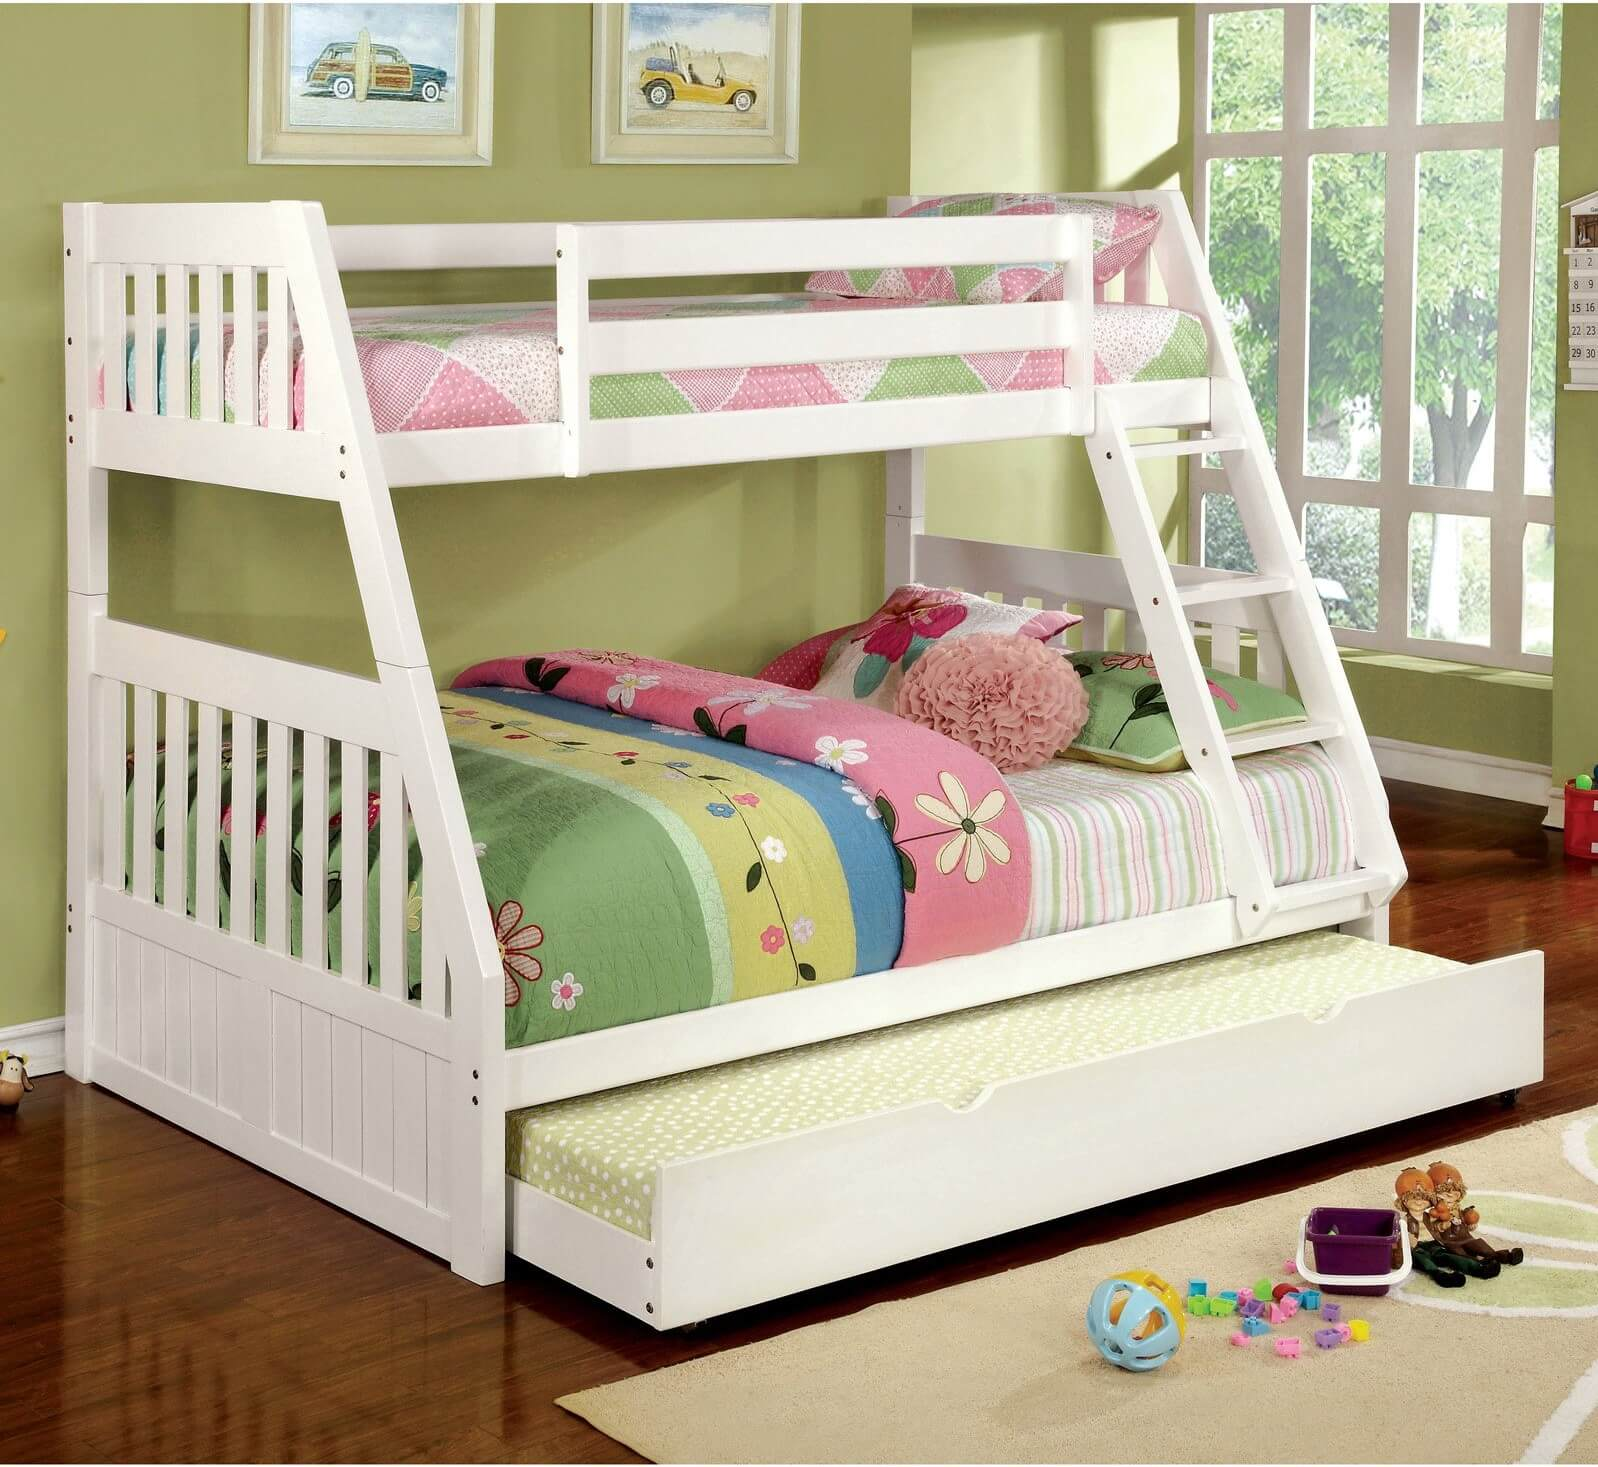 Double Bunks For Sale Top 10 Types Of Twin Over Full Bunk Beds Buying Guide